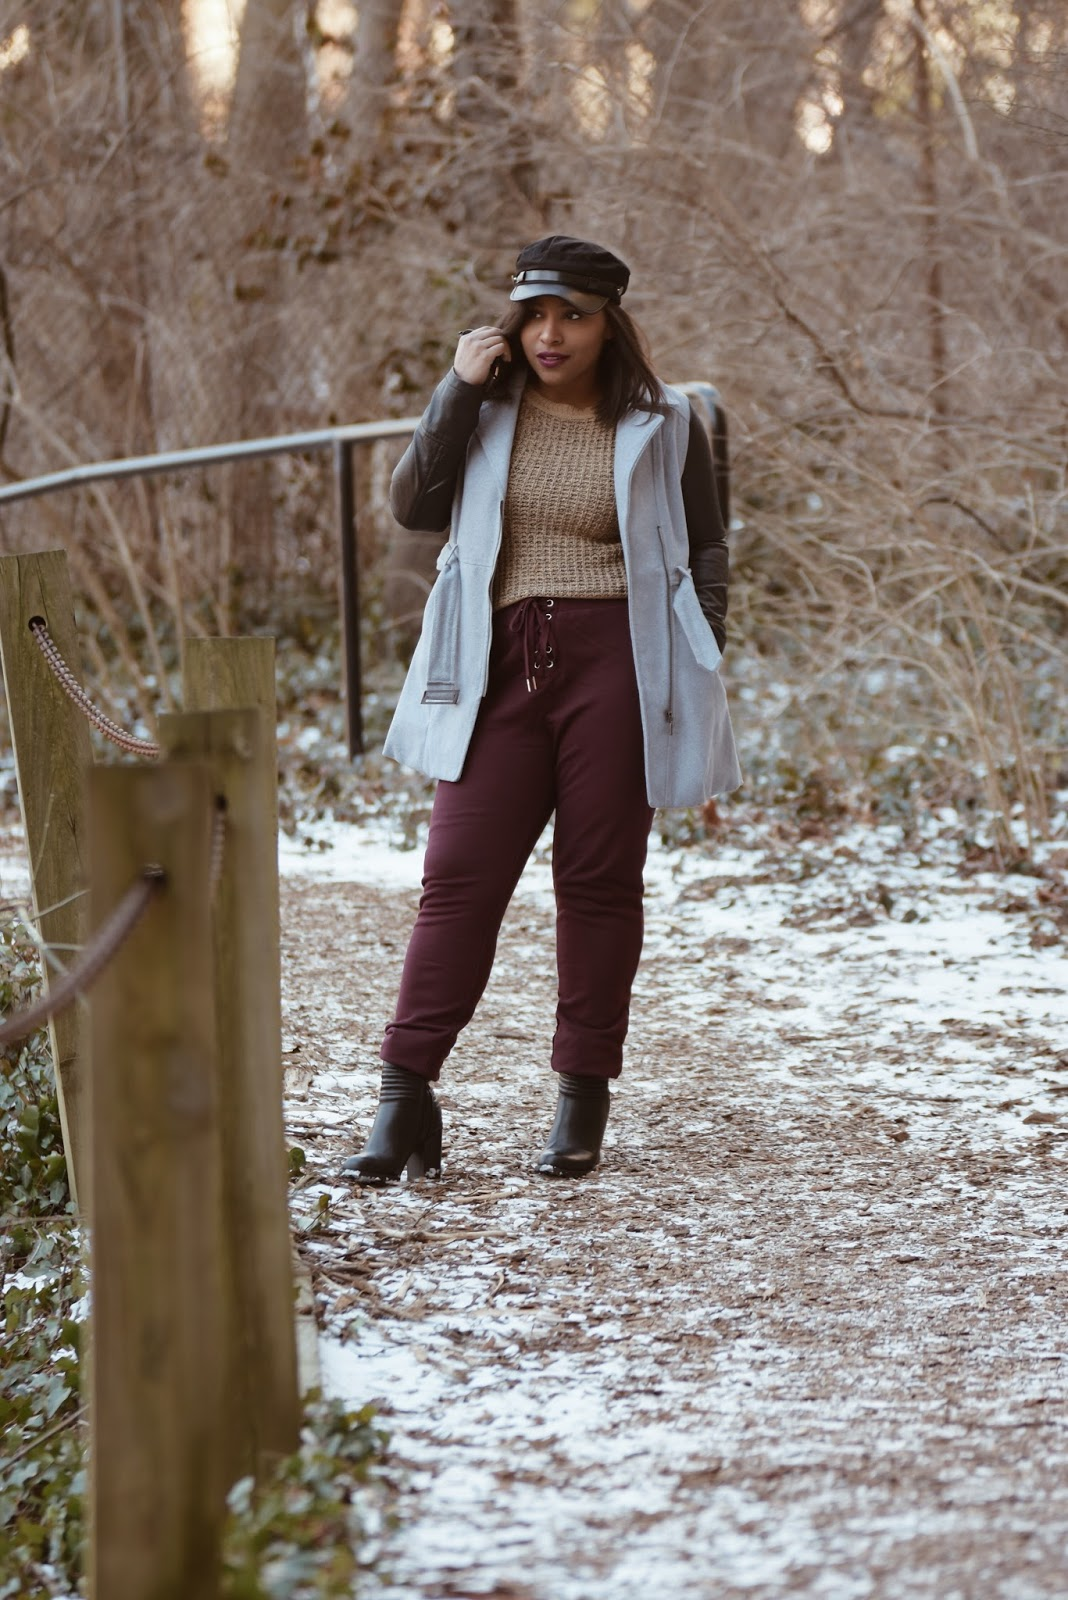 Shop Tobi, Winter outfit ideas, snow, winter jackets, joggers